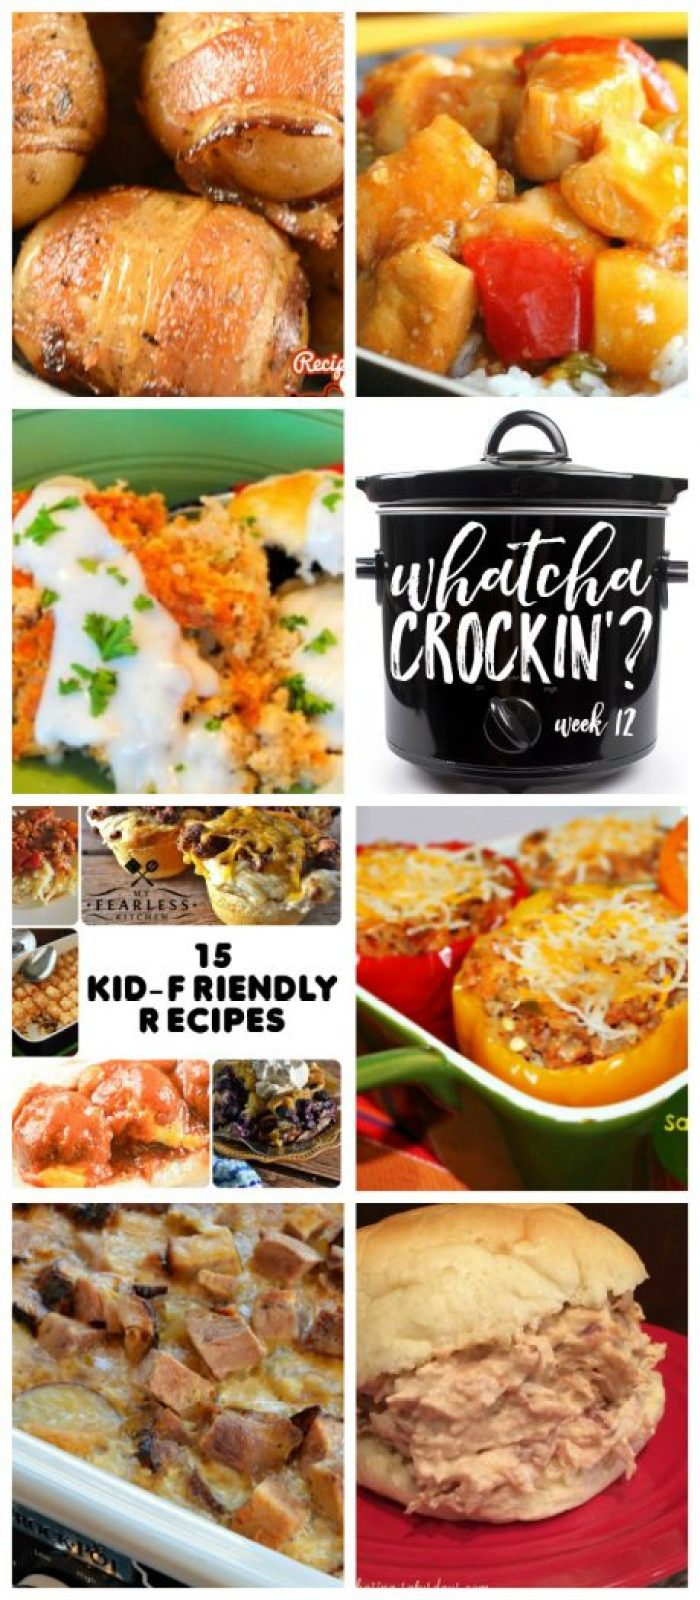 This week's Whatcha Crockin' crock pot recipes include 15 Kid Friendly Recipes, Crock Pot Fiesta Crack Chicken, Crock Pot Bacon Taters, Slow Cooker Sweet and Sour Chicken, Slow Cooker Country Breakfast with White Pepper Gravy and Biscuits, Crock Pot Scalloped Potatoes with Ham, Slow Cooker Sausage Stuffed Peppers and much more!